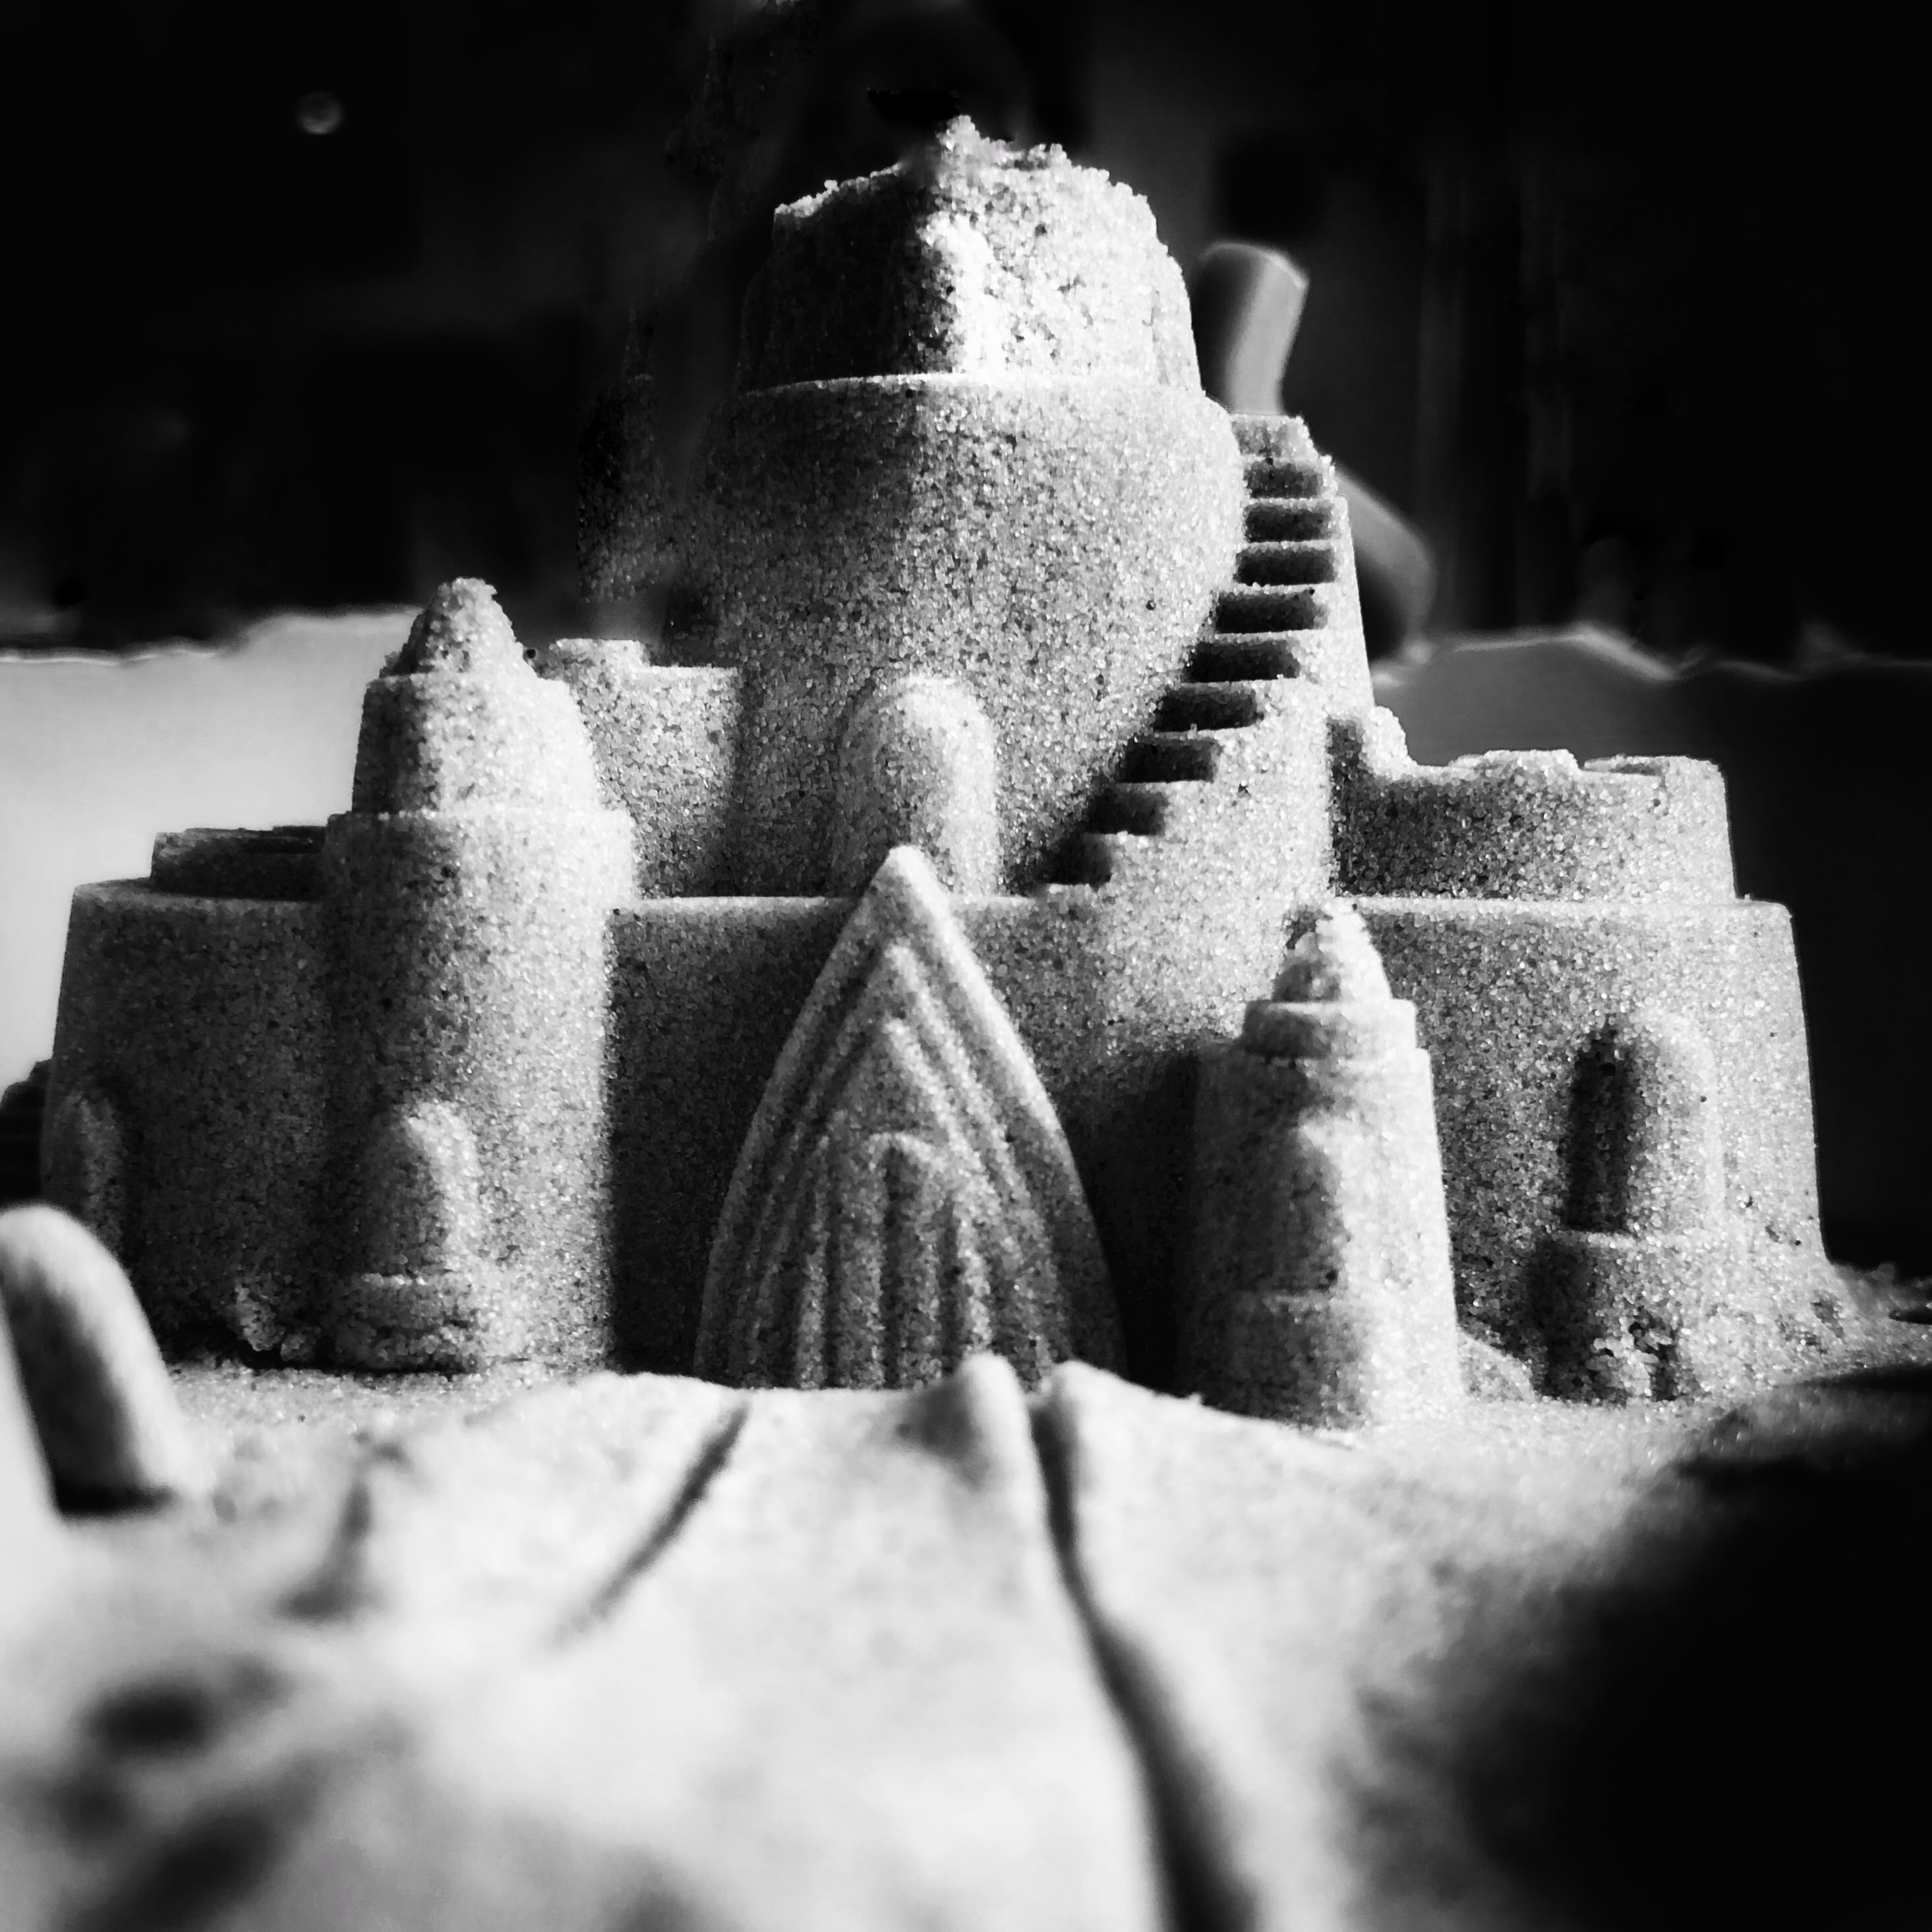 grayscale photo of sand castle